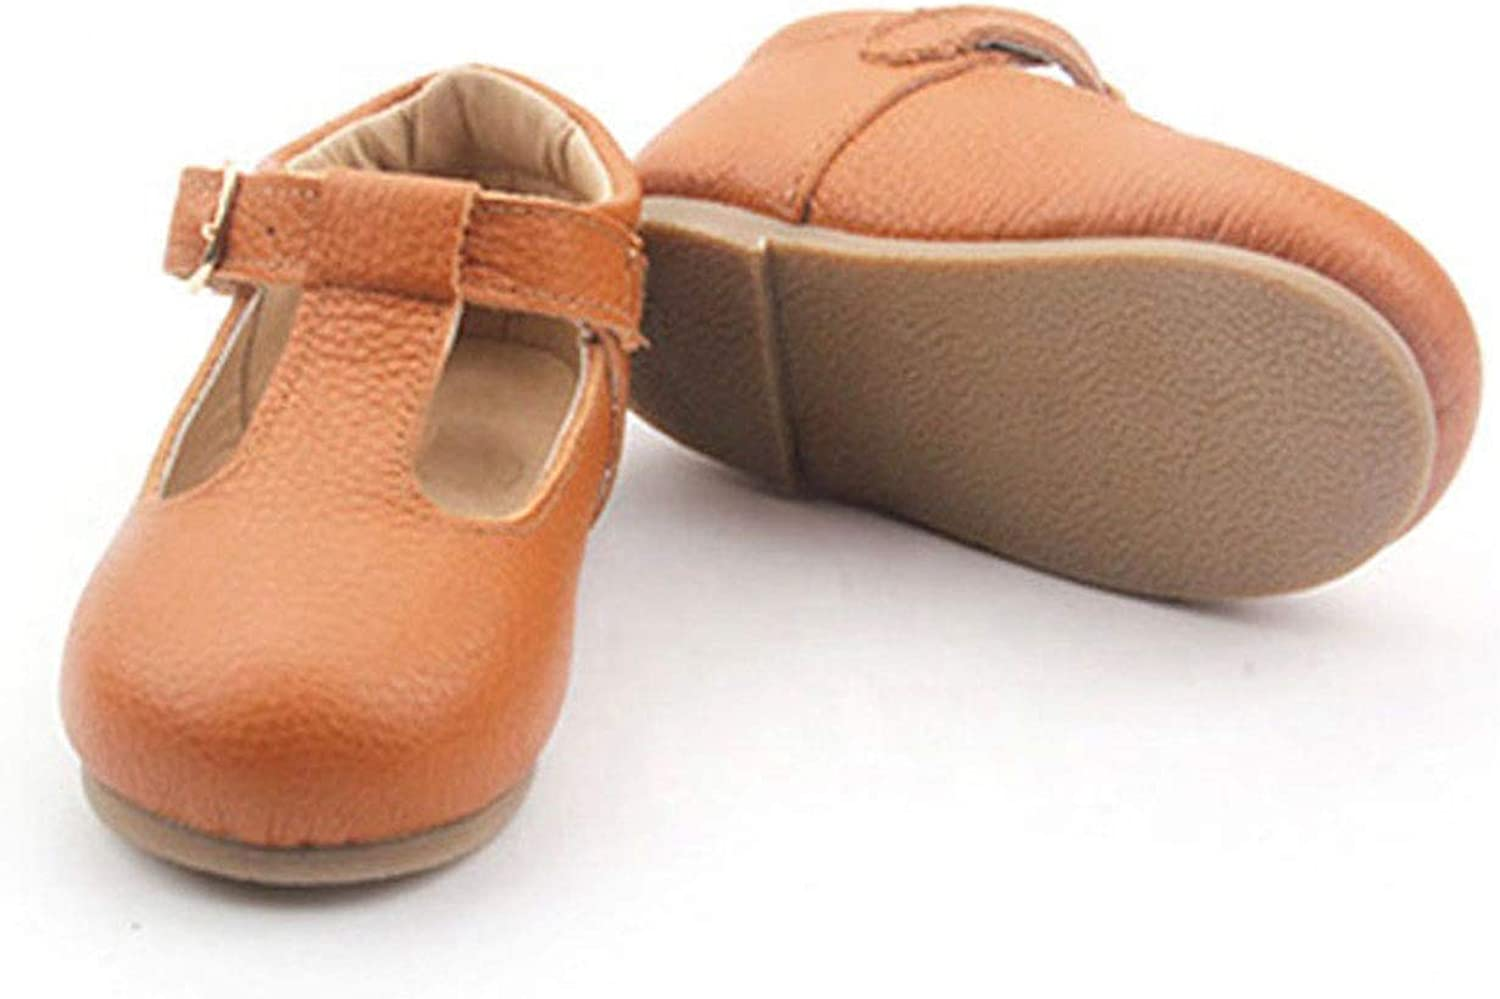 T-bar Strap with Genuine Leather Cognac Boutique Brown Girls Toddler Sandals Flats Mary Jane